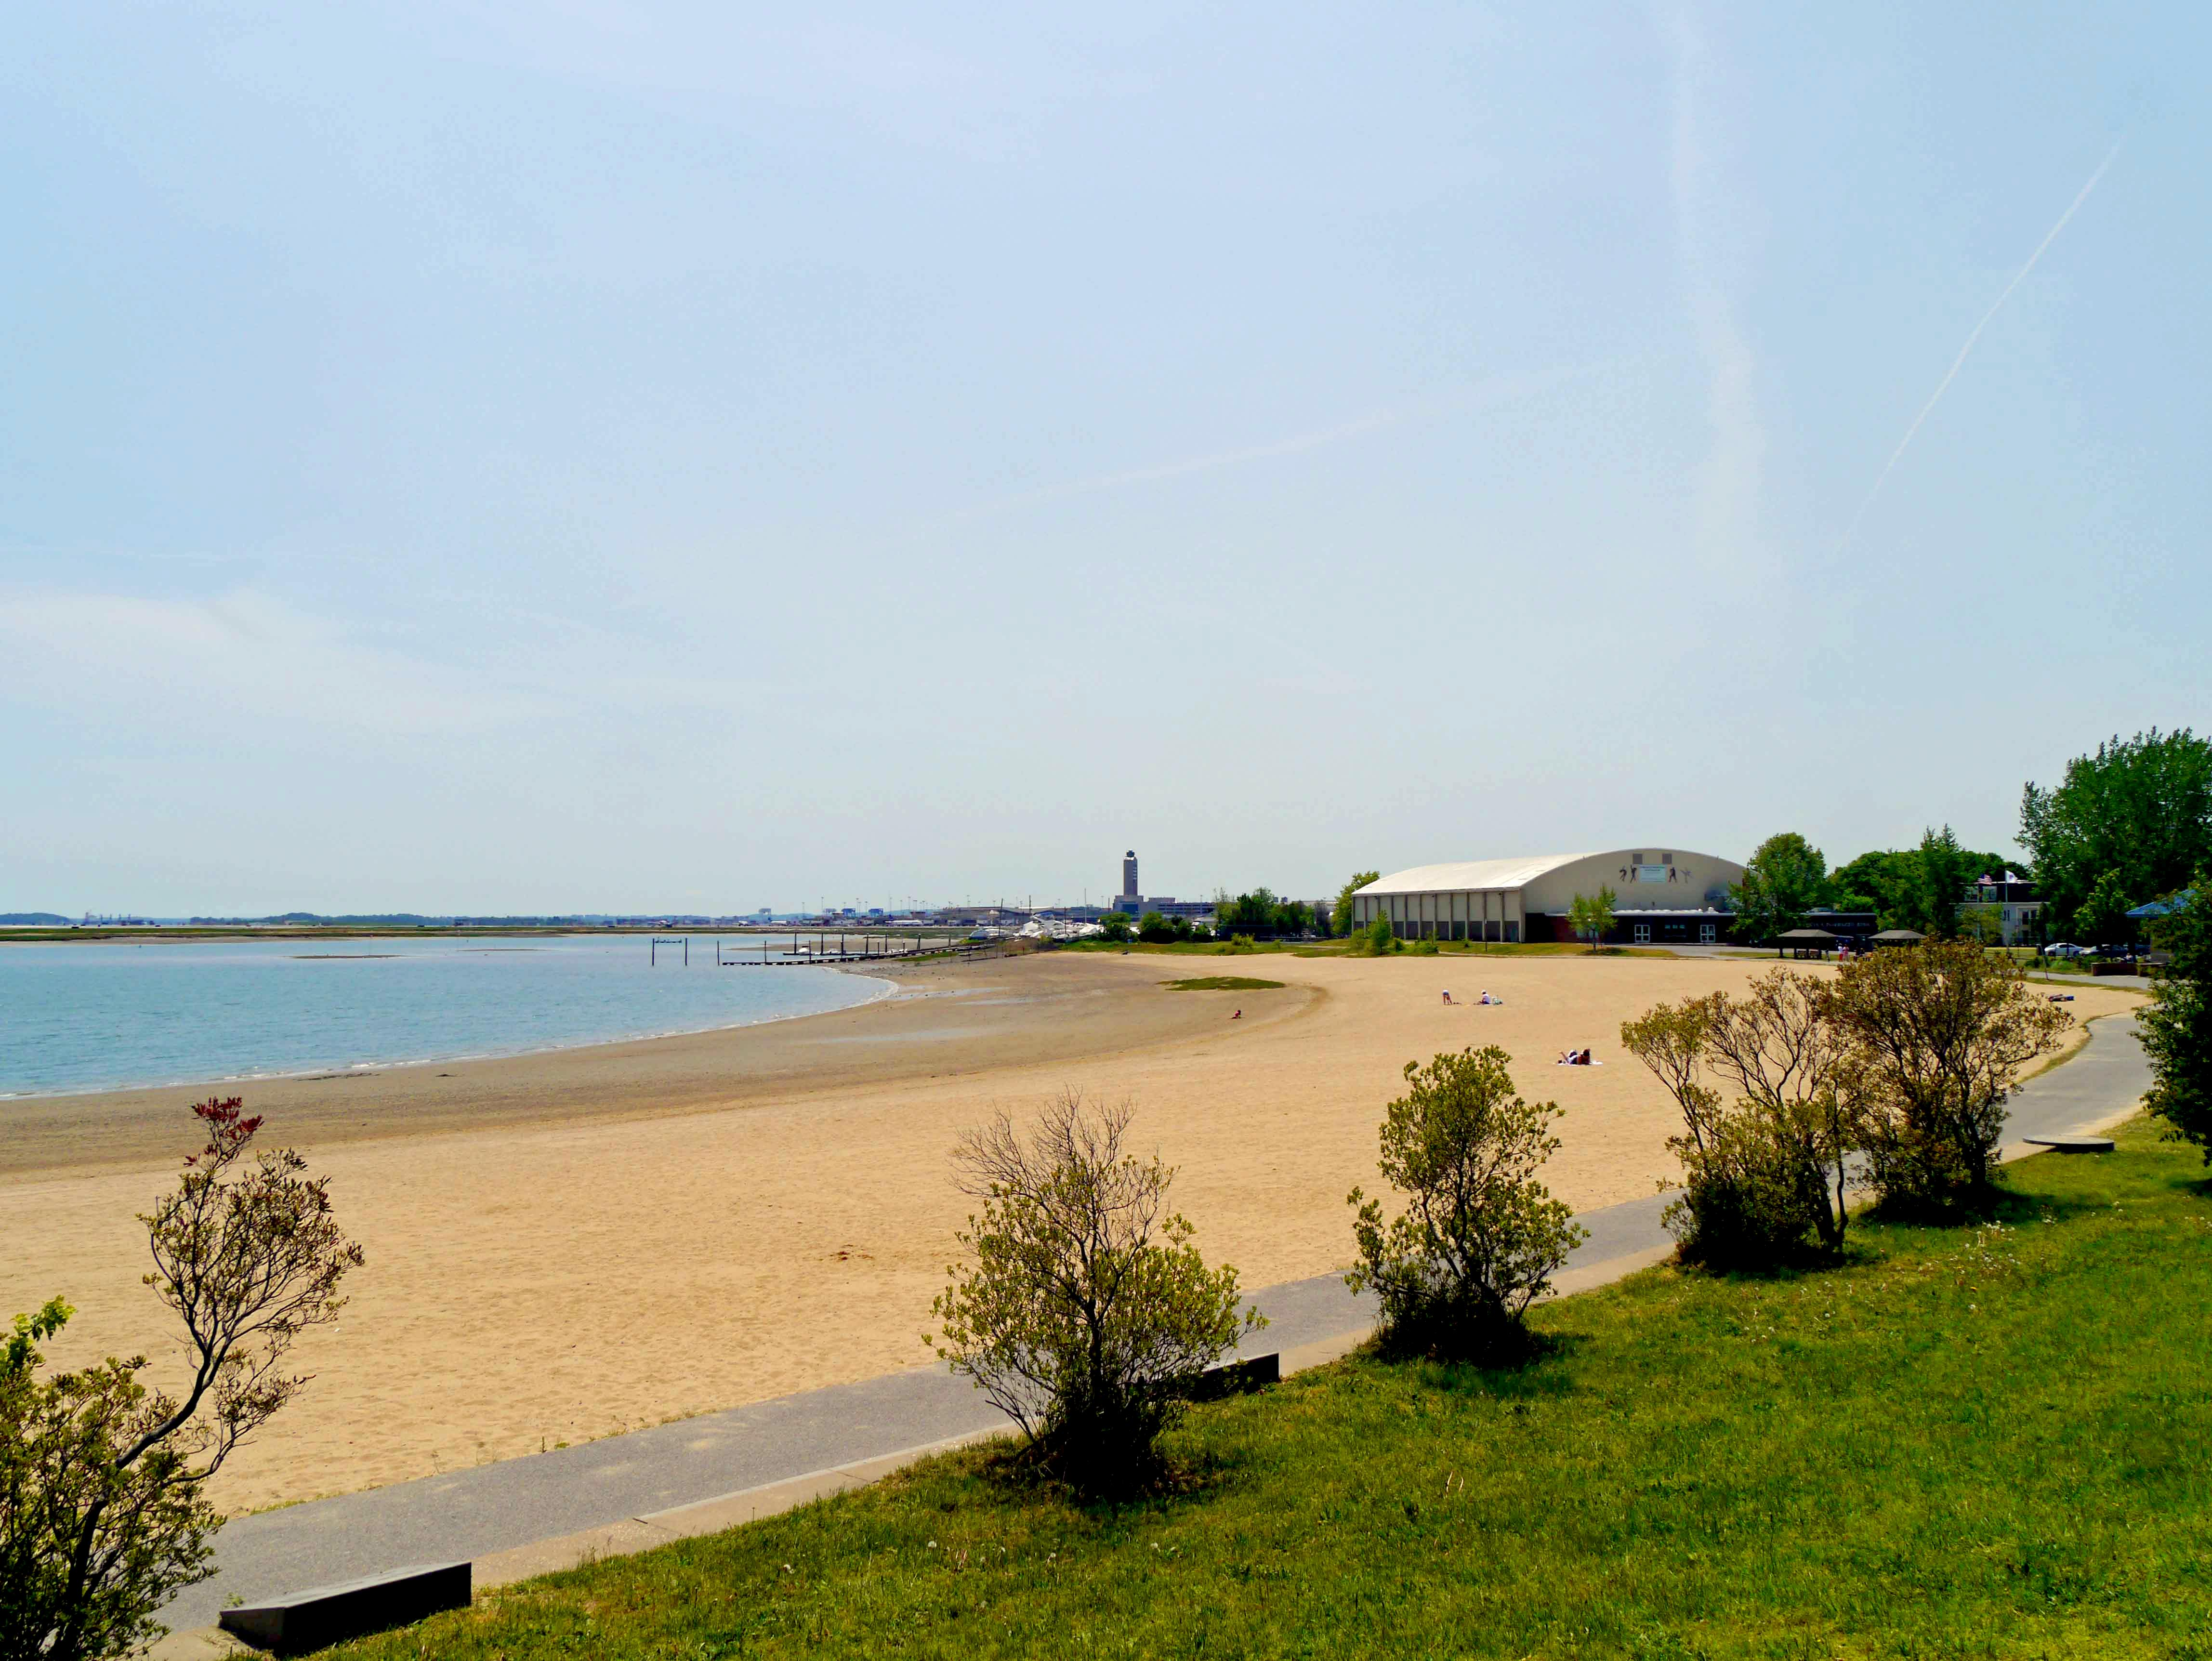 The sandy crescent of Constitution Beach is complemented by a playground, public baths, playgrounds, and picnic tables.